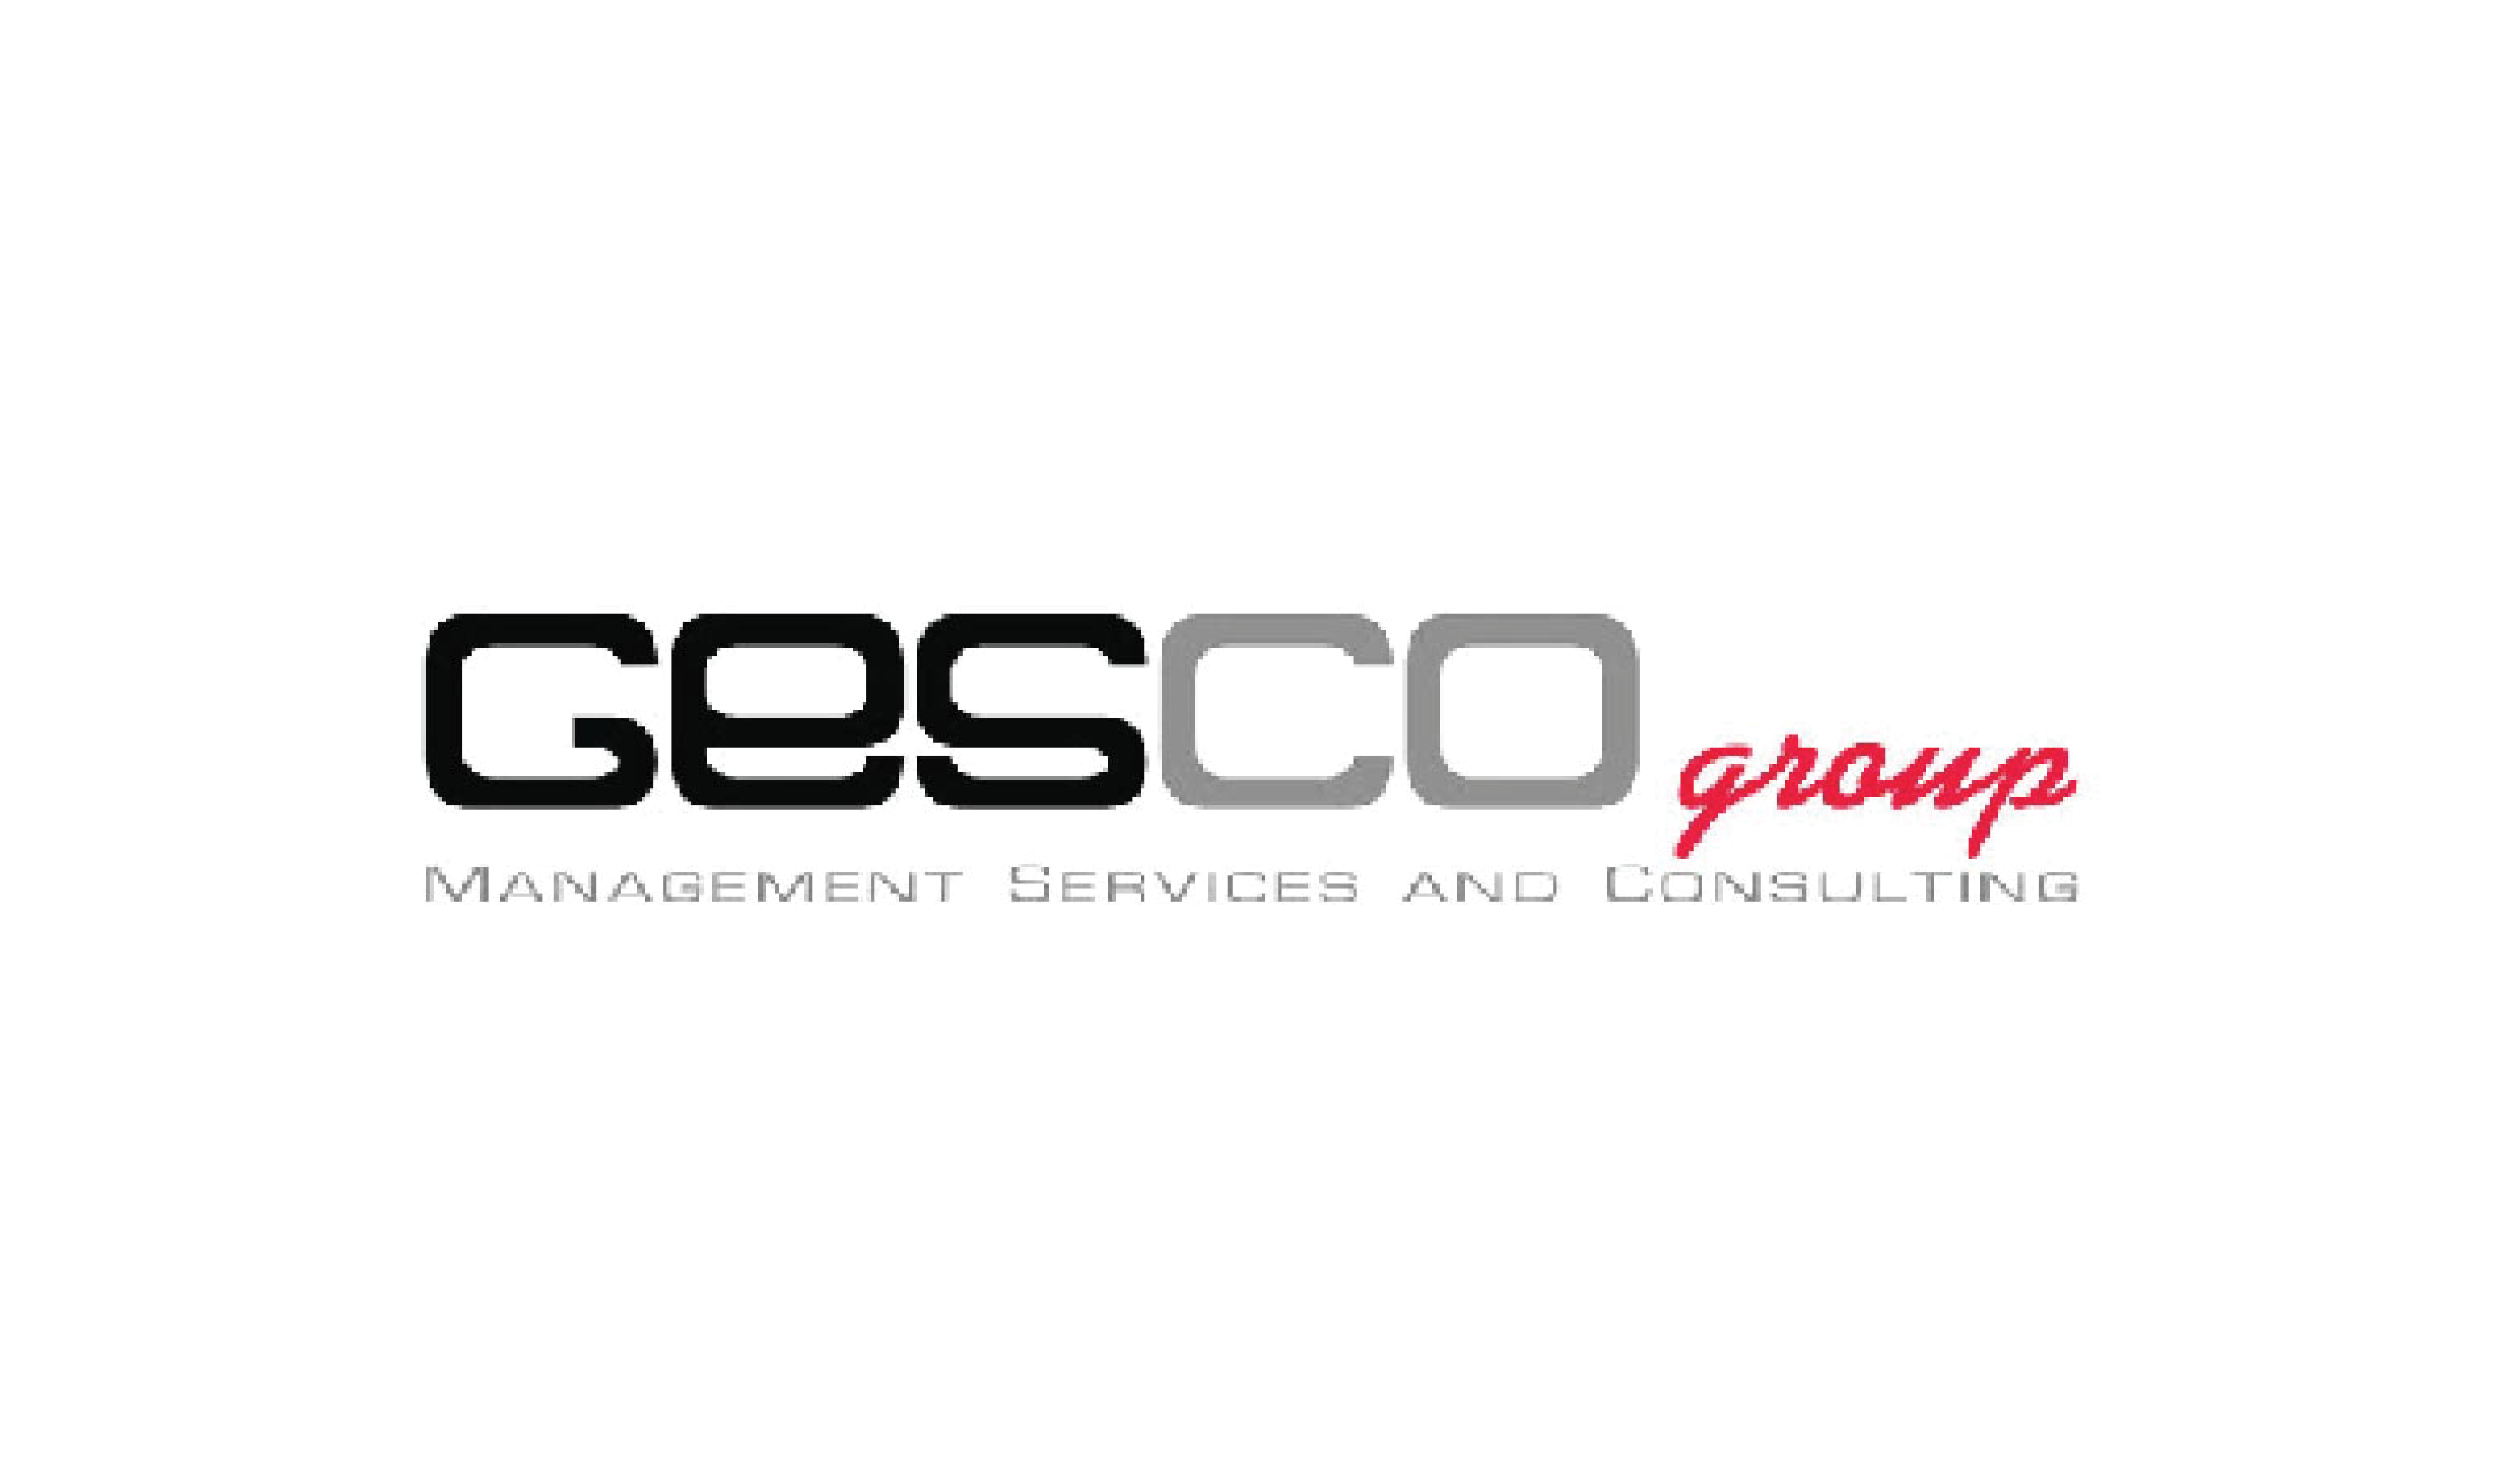 Gesco Group